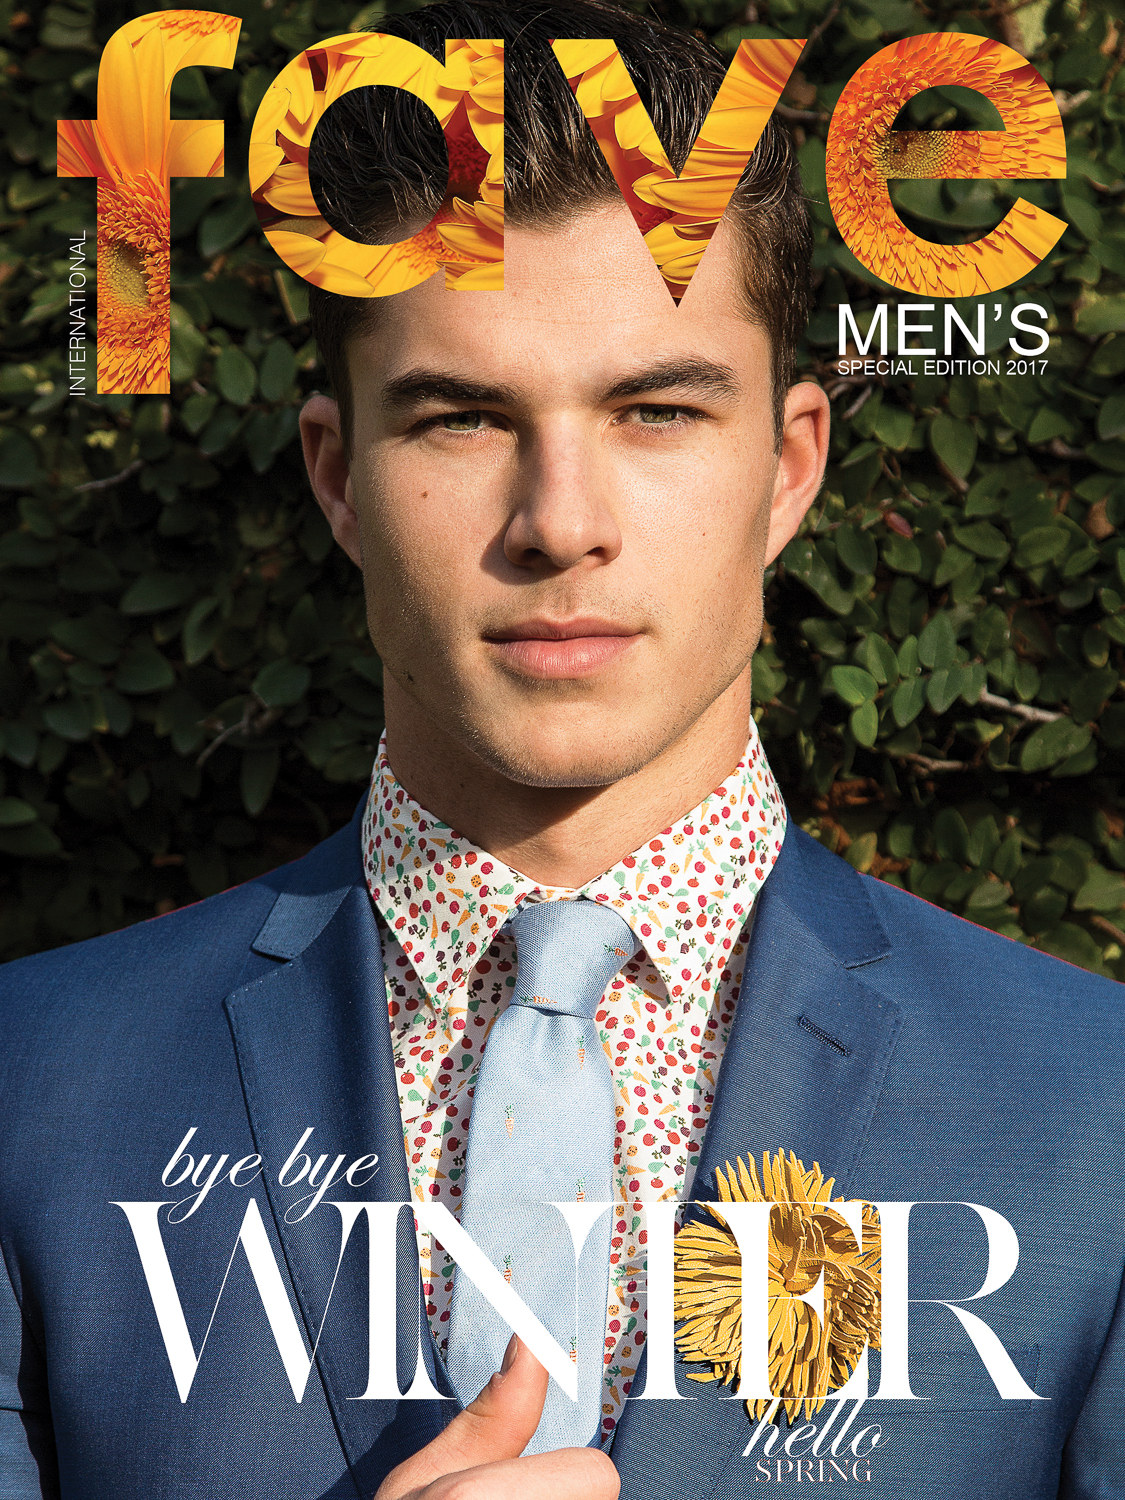 FAVE Mag Cover - Ted Sun Photo.jpg